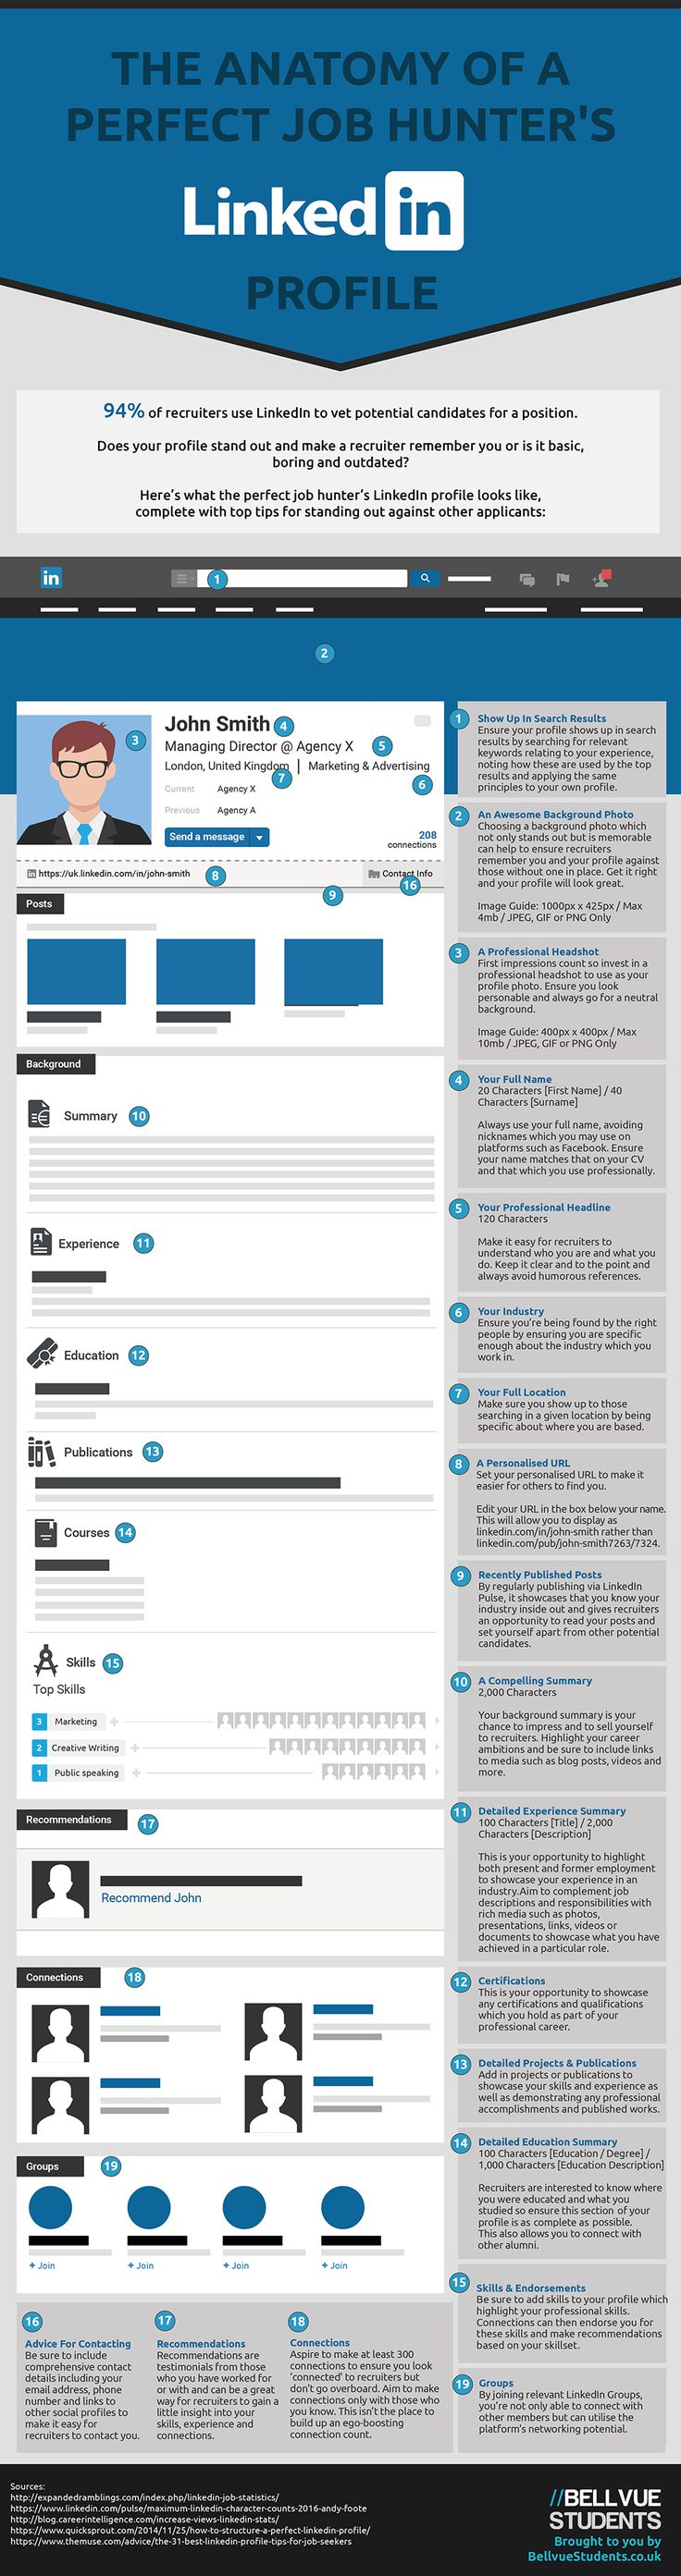 The Anatomy Of A Perfect Job Hunter's LinkedIn Profile #Infographic #Career #LinkedIn #SocialMedia